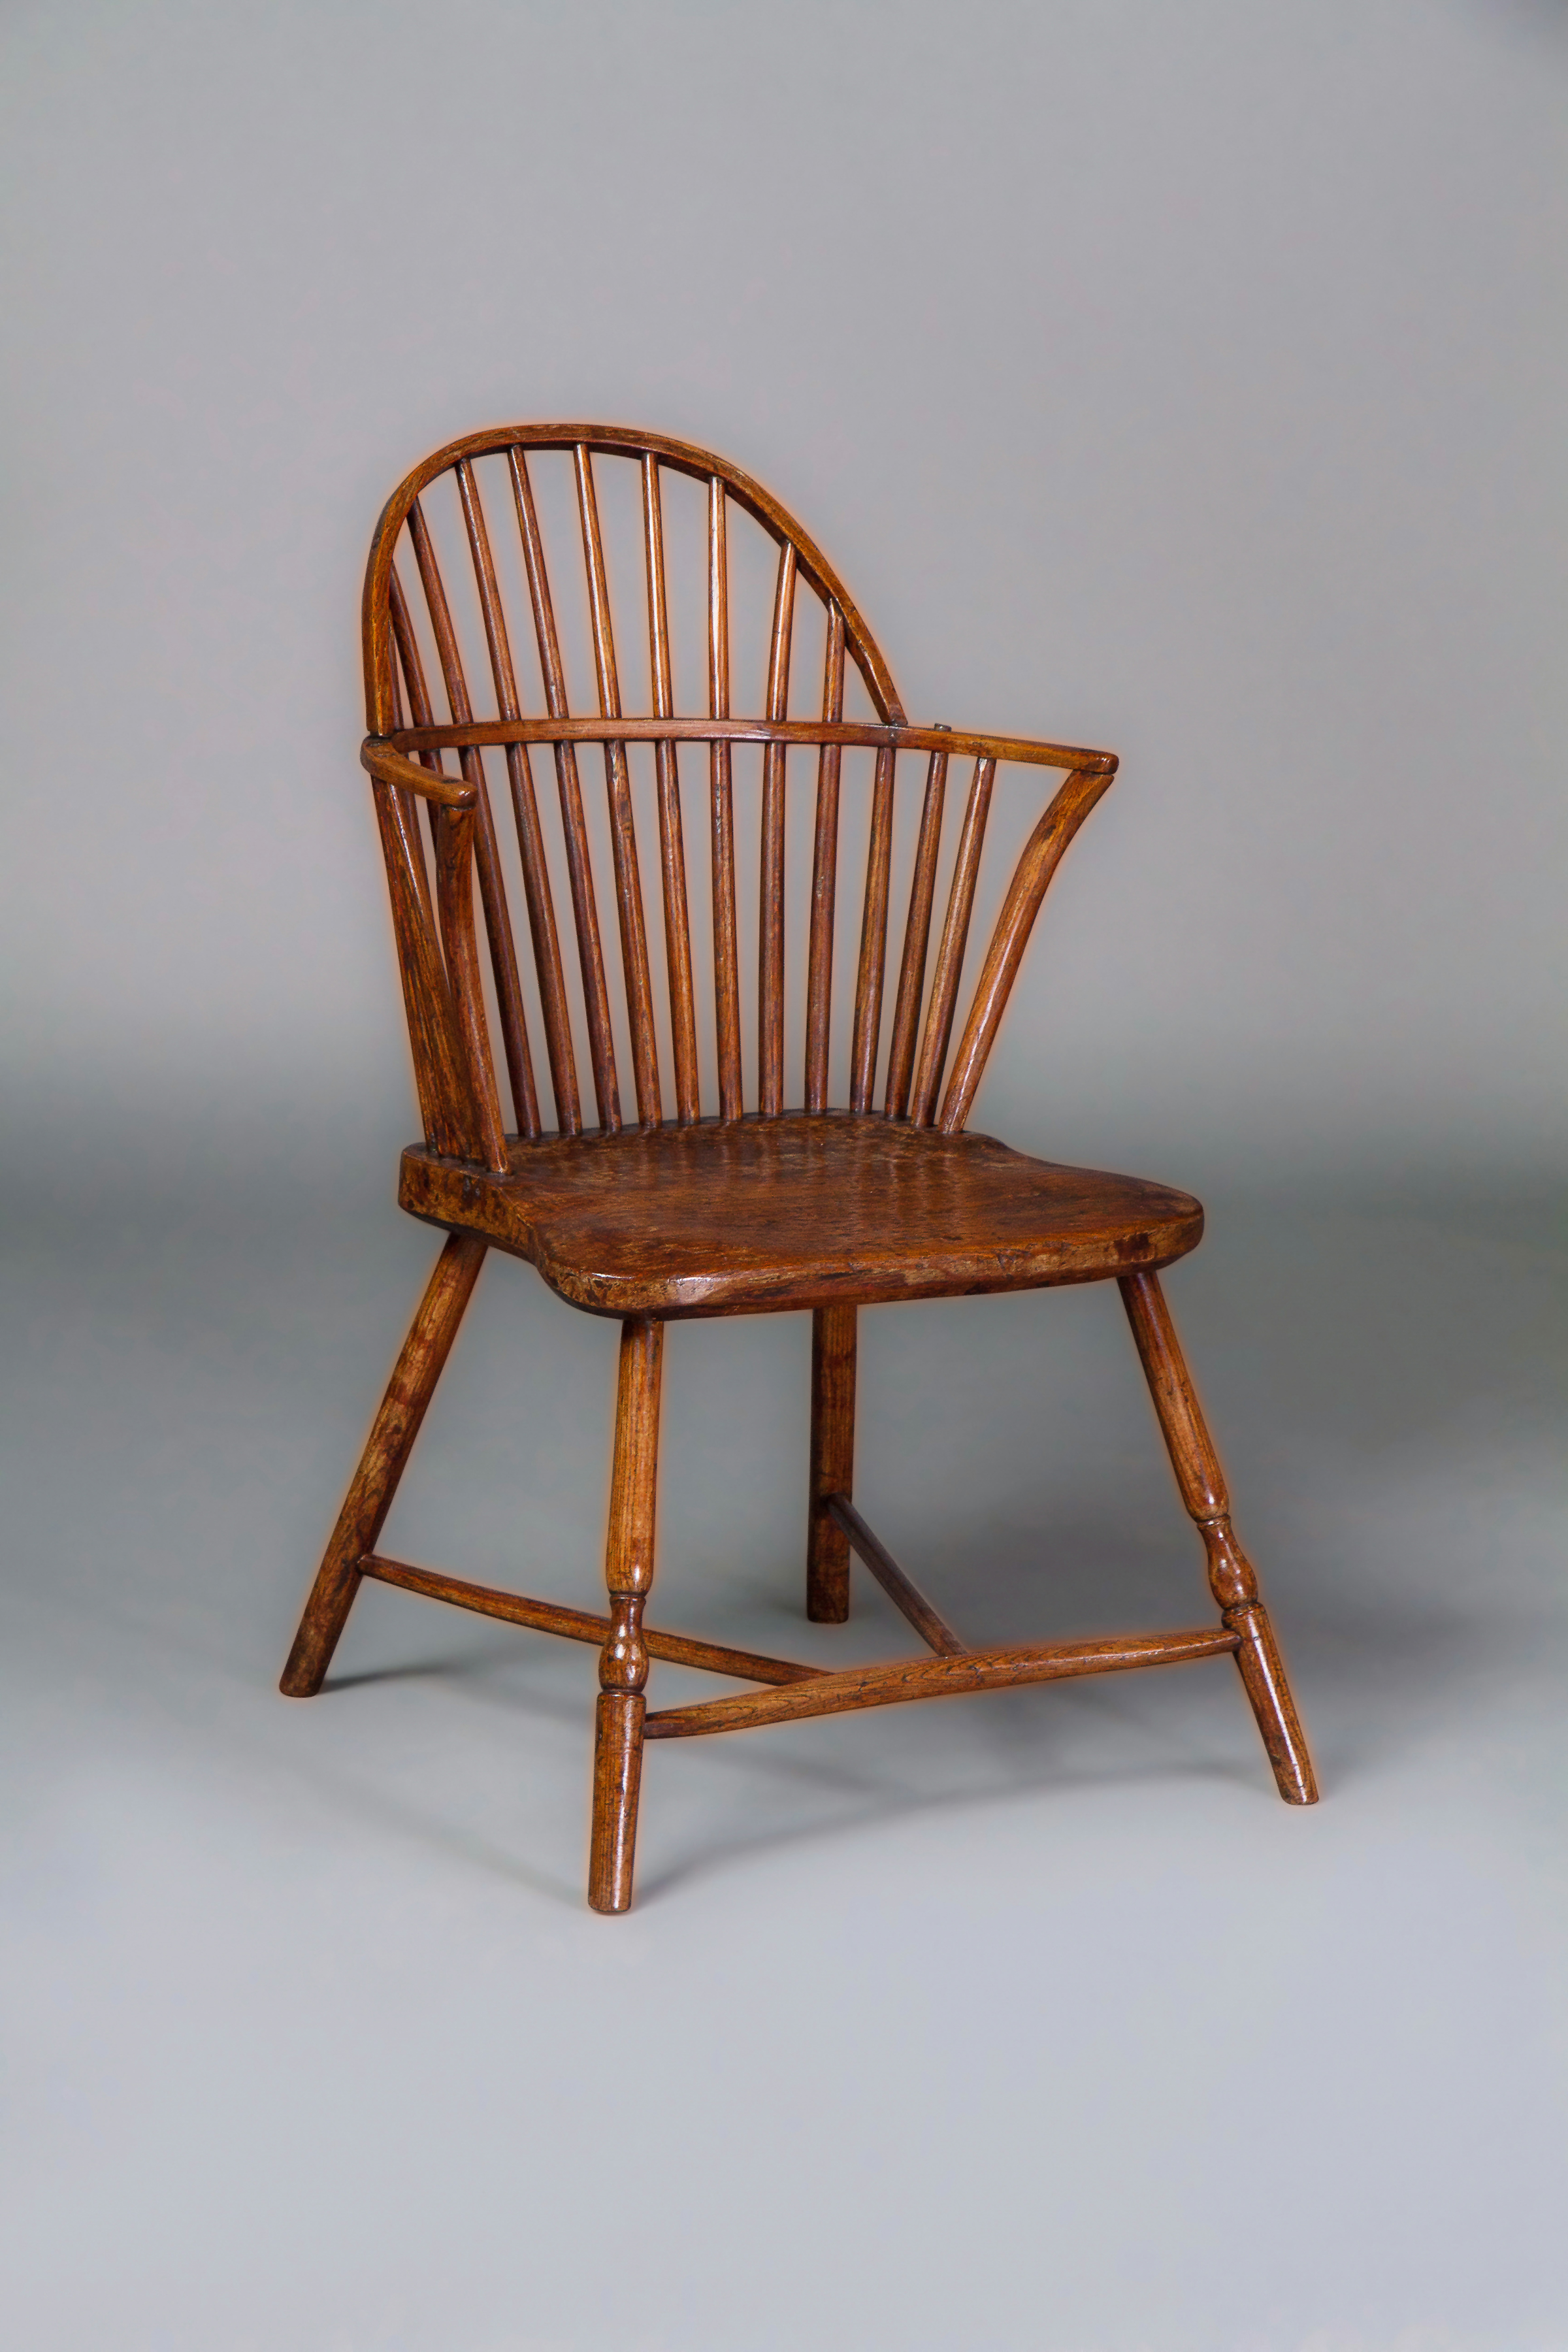 unfinished windsor chairs gym chair lazada gillows a late 18th century ash possibly